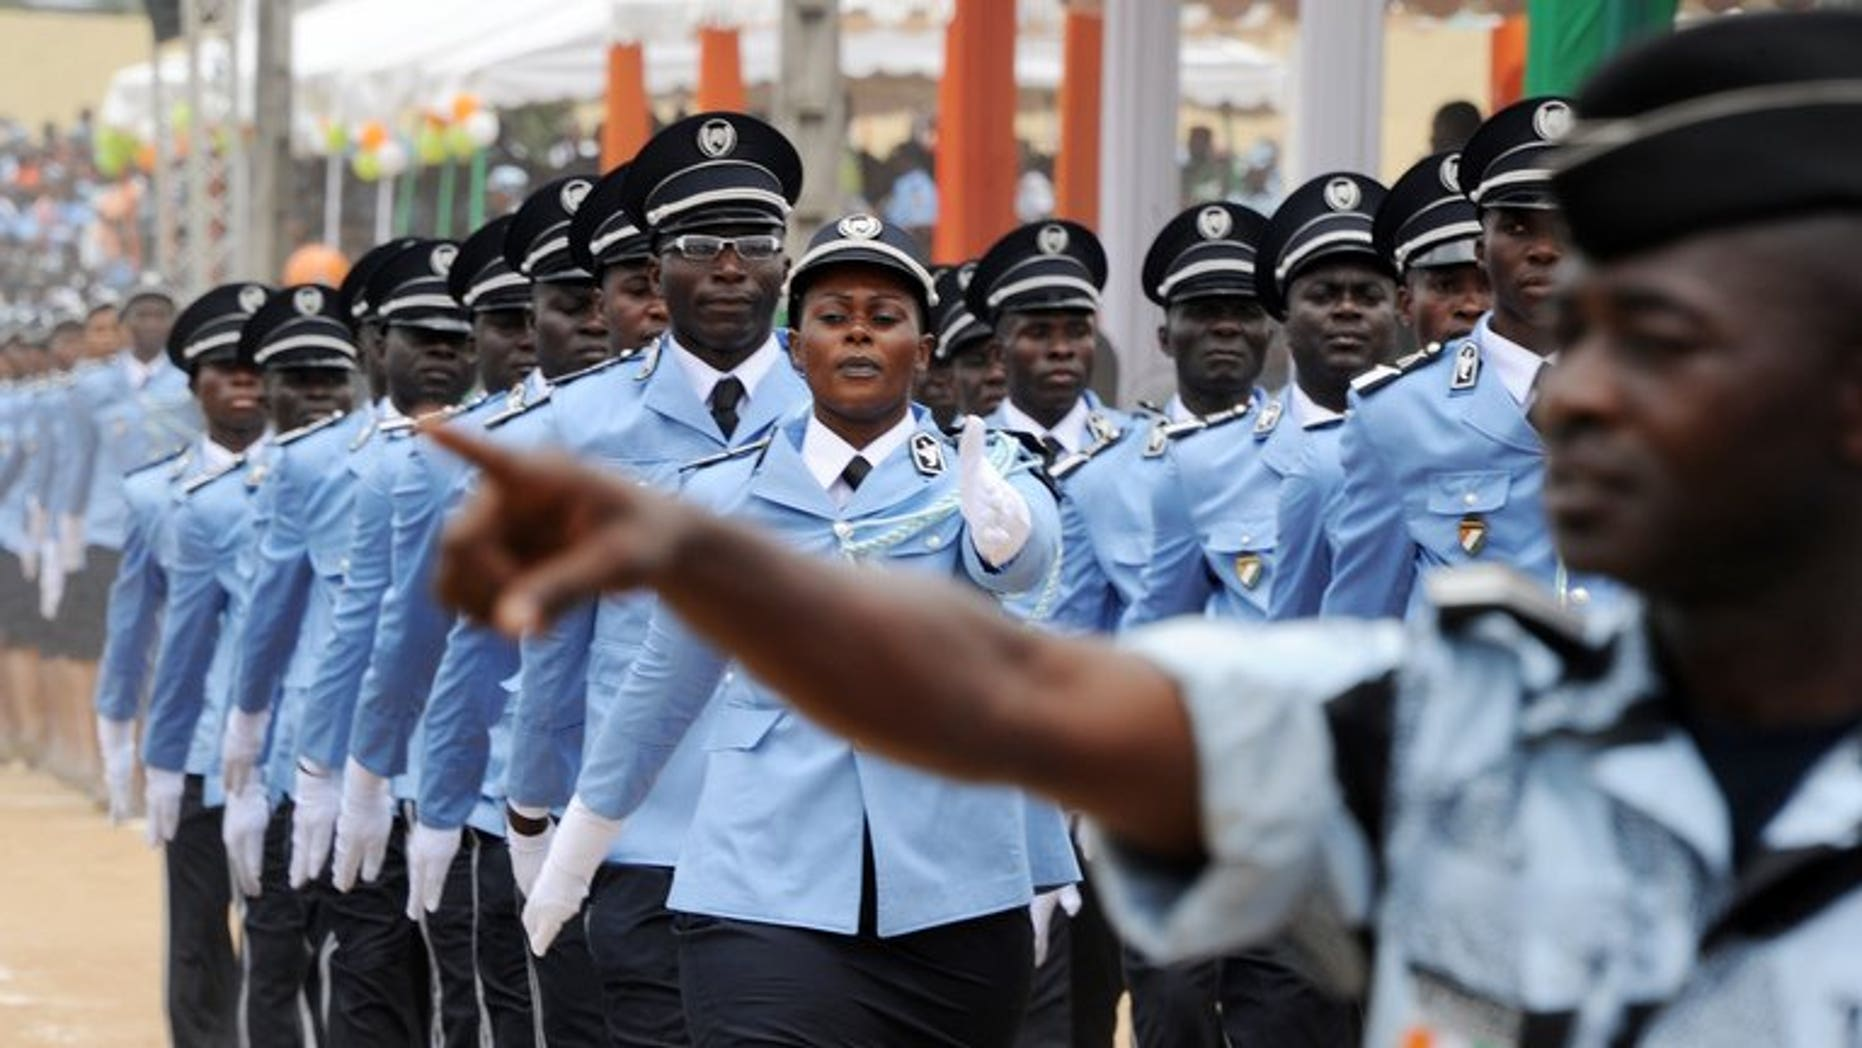 Ivorian police officers march during a graduation ceremony on September 28, 2012 in Abidjan. Three members of the Ivorian security forces have been killed in Yamoussoukro, the administrative capital of Ivory Coast, in two separate attacks by armed gangs, officials said.